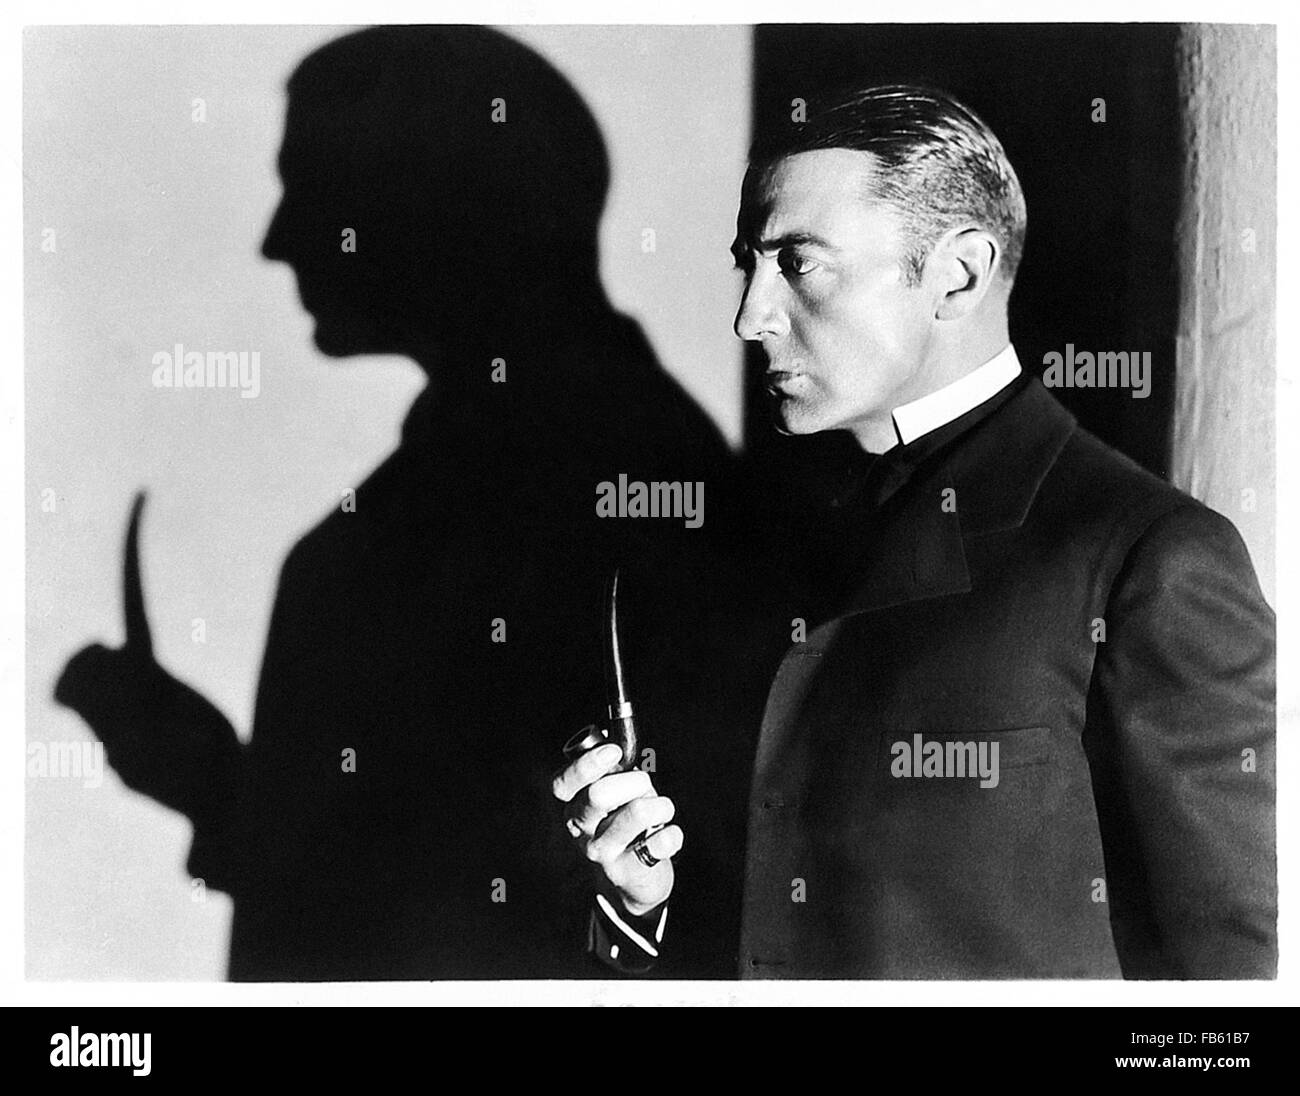 Publicity photograph showing Clive Brook in the role of Sherlock Holmes released to promote 'The Return of Sherlock - Stock Image